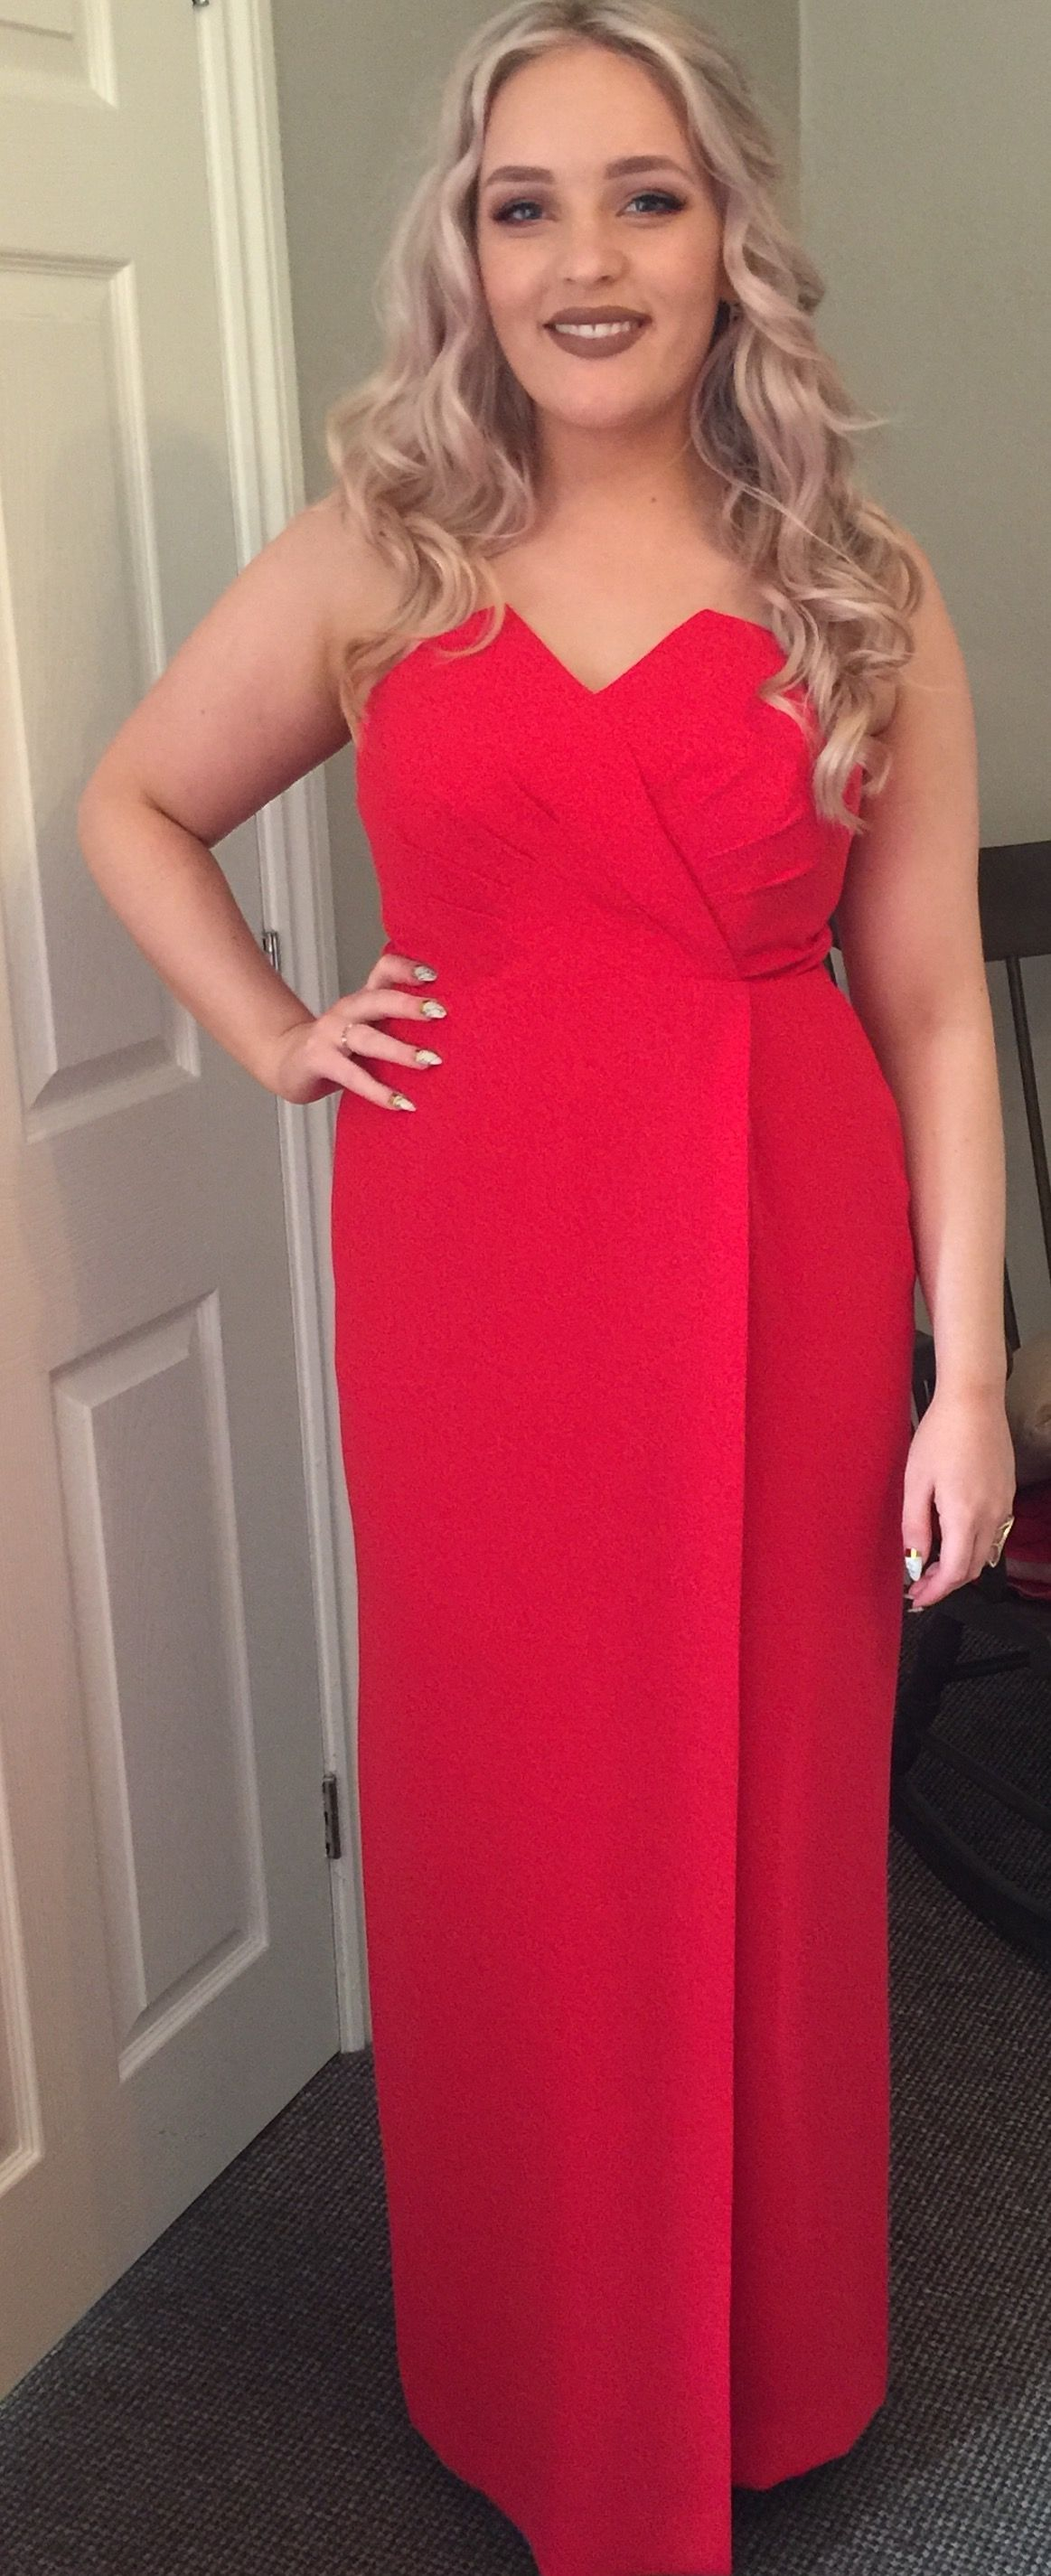 Our Grand-Daughter Louise all ready  to attend the theatre Ball